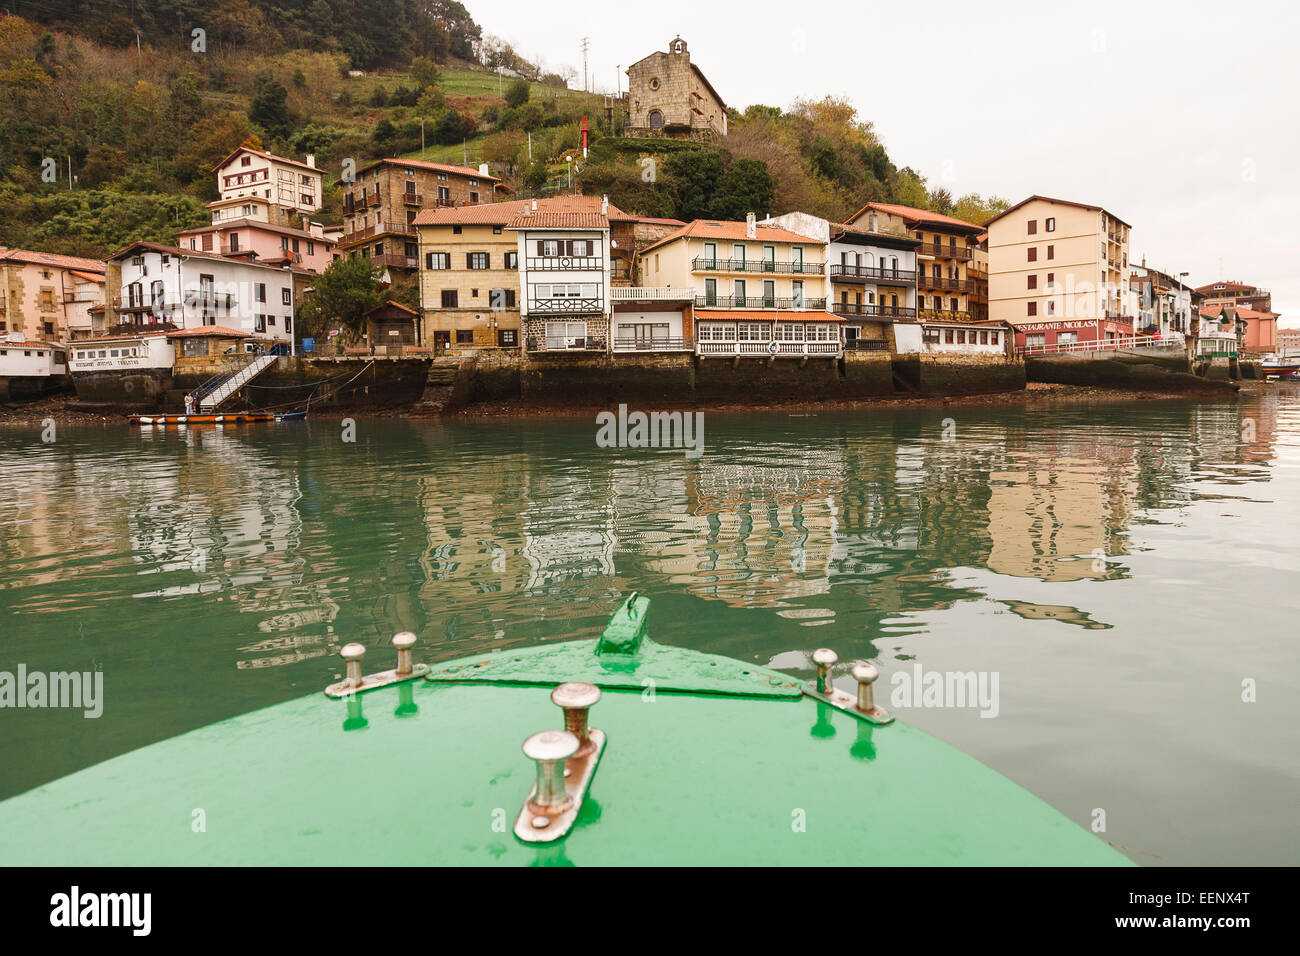 Pasaia. Pasajes de San Juan. Guipuzcoa. Basque country. Spain. Europe - Stock Image